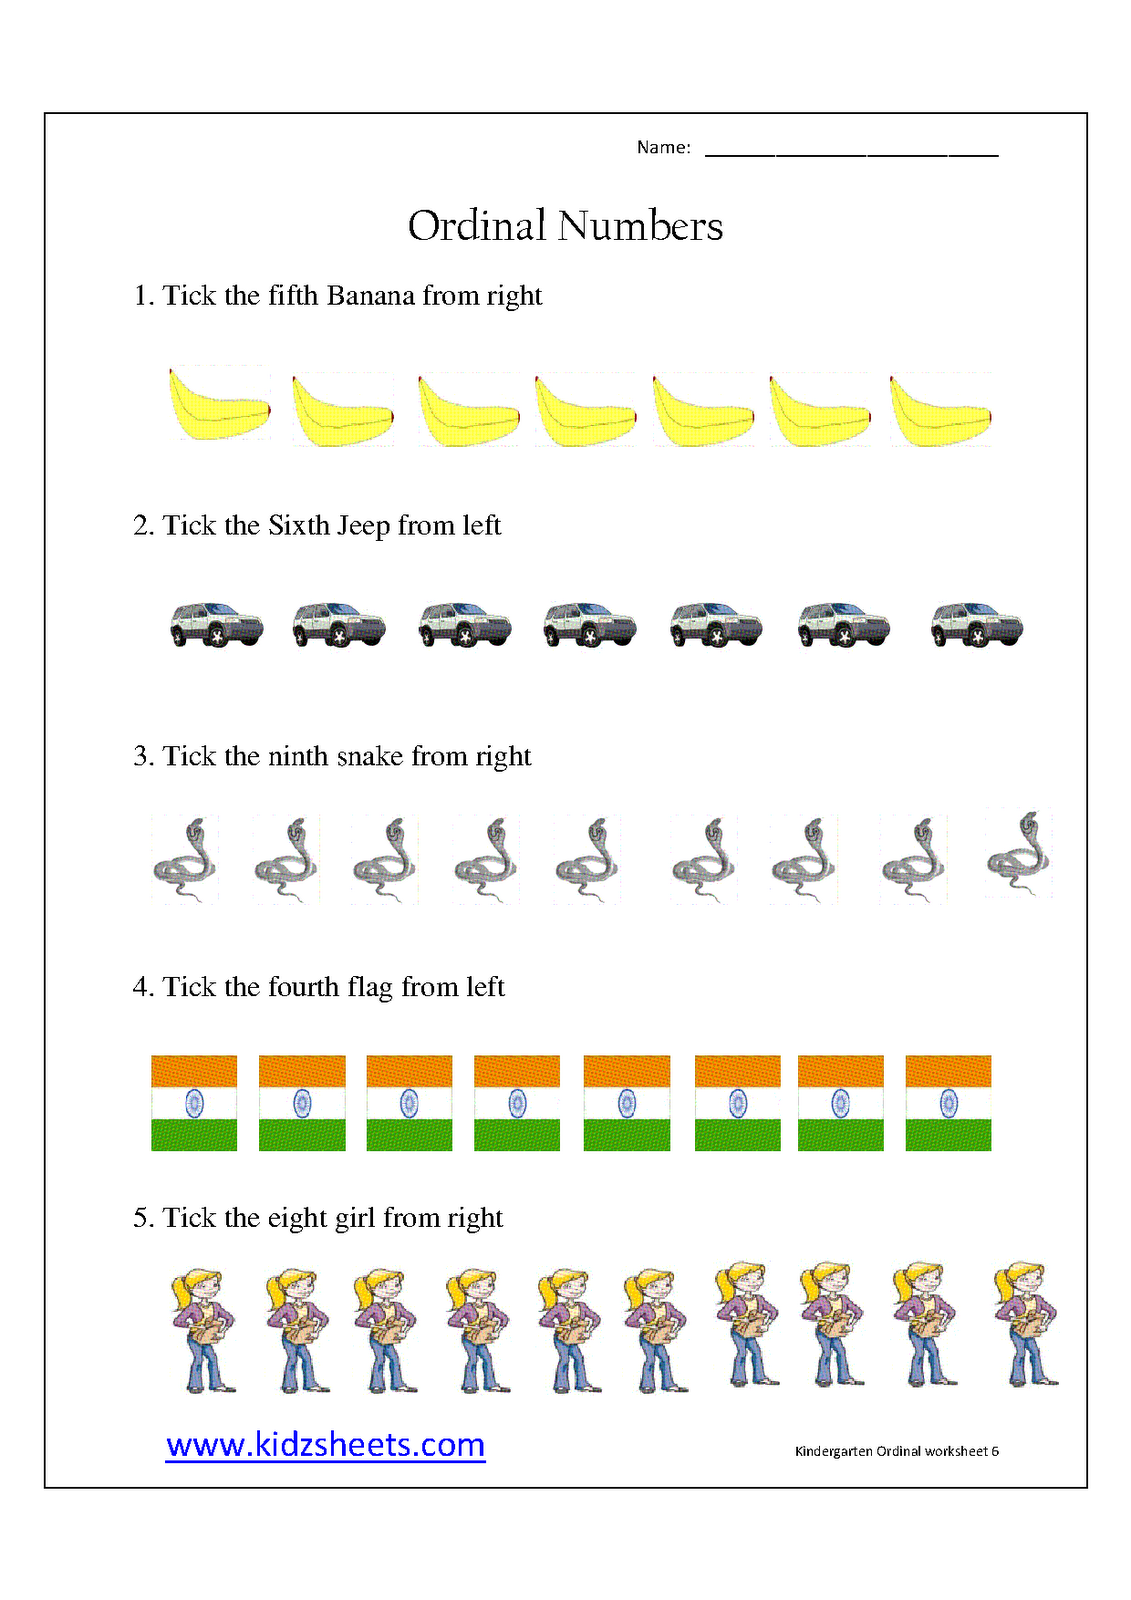 Kidz worksheets kindergarten ordinal numbers worksheet6 kindergarten ordinal numbers ibookread Download